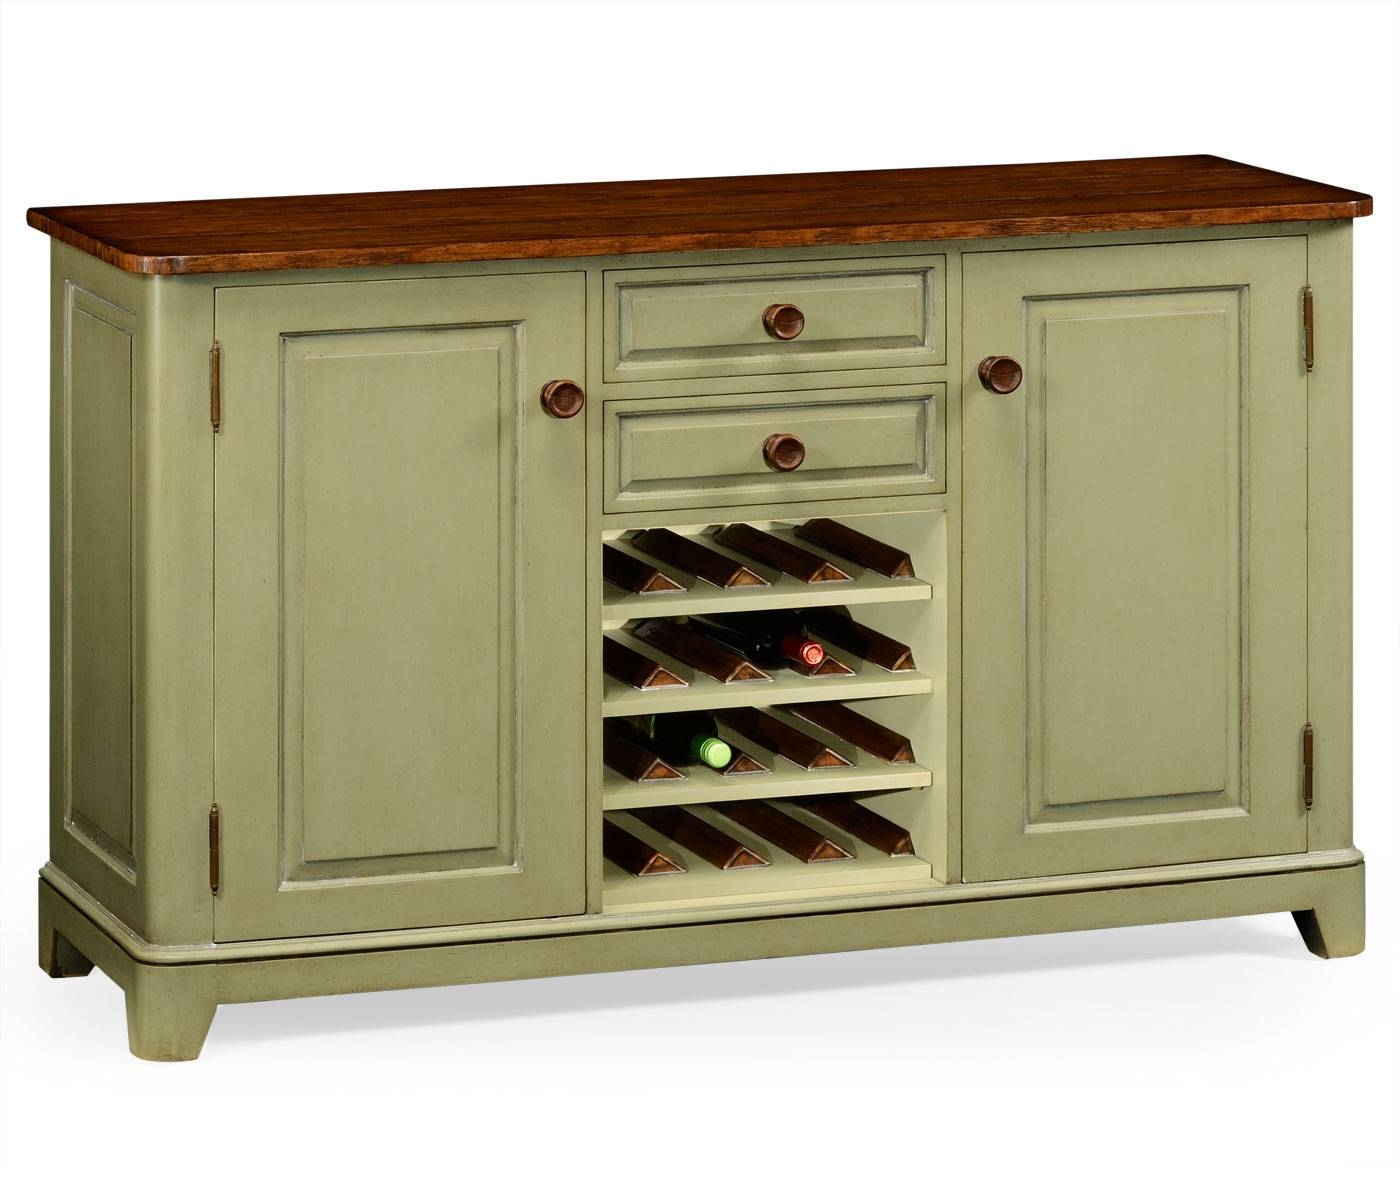 Things To Know About Sideboard With Wine Racks Bonnie Is Good Pertaining To 2018 Sideboards With Wine Rack (#15 of 15)